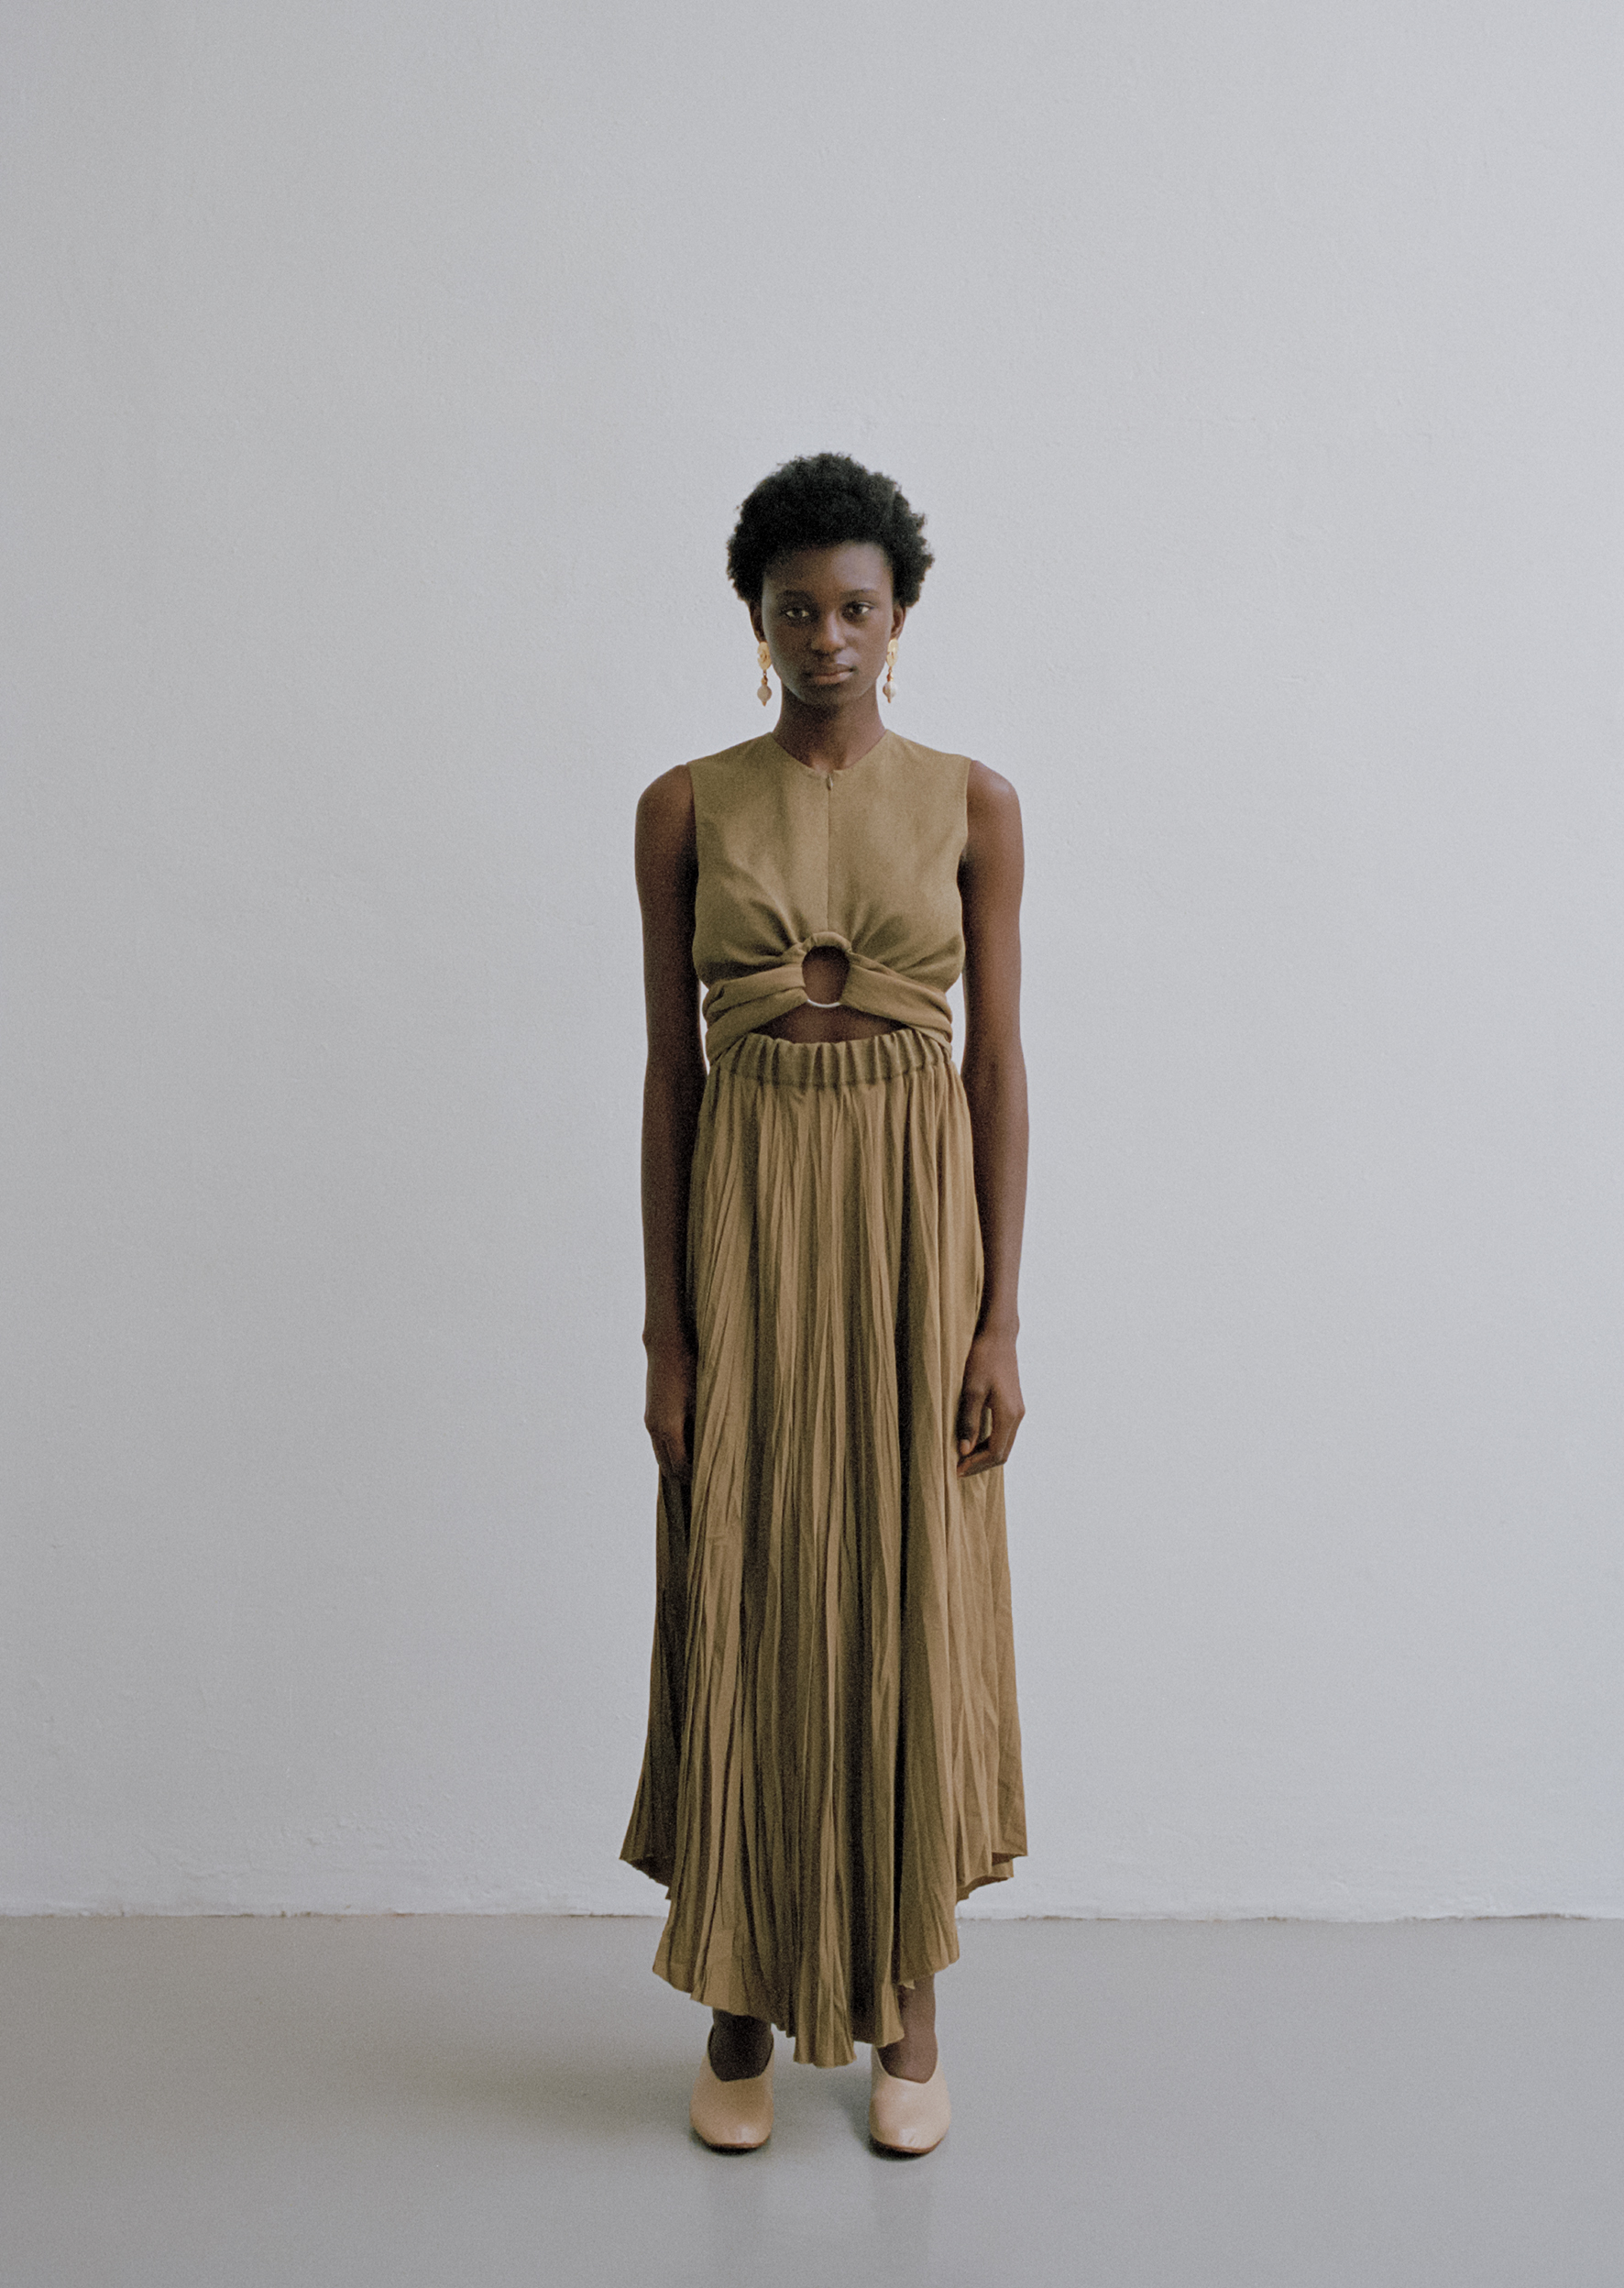 Raw linen and crush-pleated dress, golden pendant earrings MADAME PAULINE VINTAGE